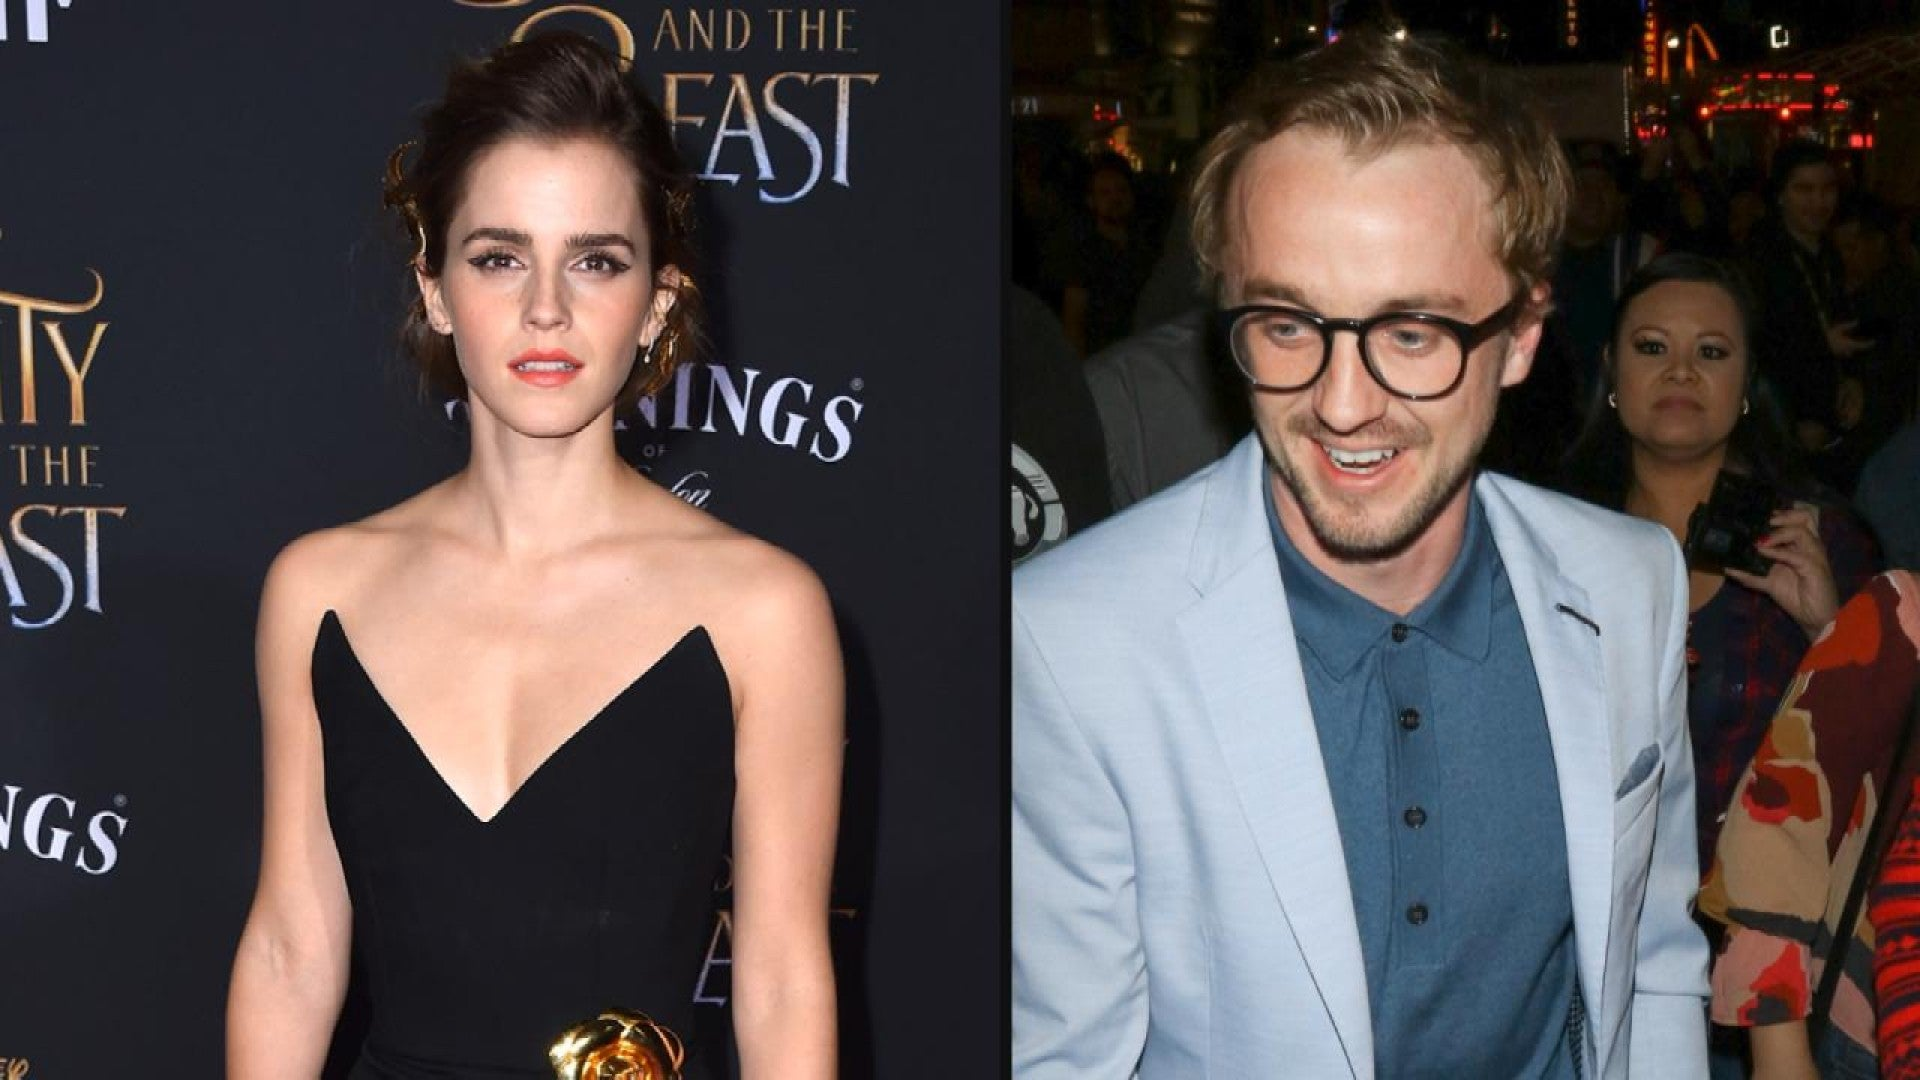 Exclusive Harry Potter S Matthew Lewis And Tom Felton Support Emma Watson At Beauty And The Beast Premiere Entertainment Tonight